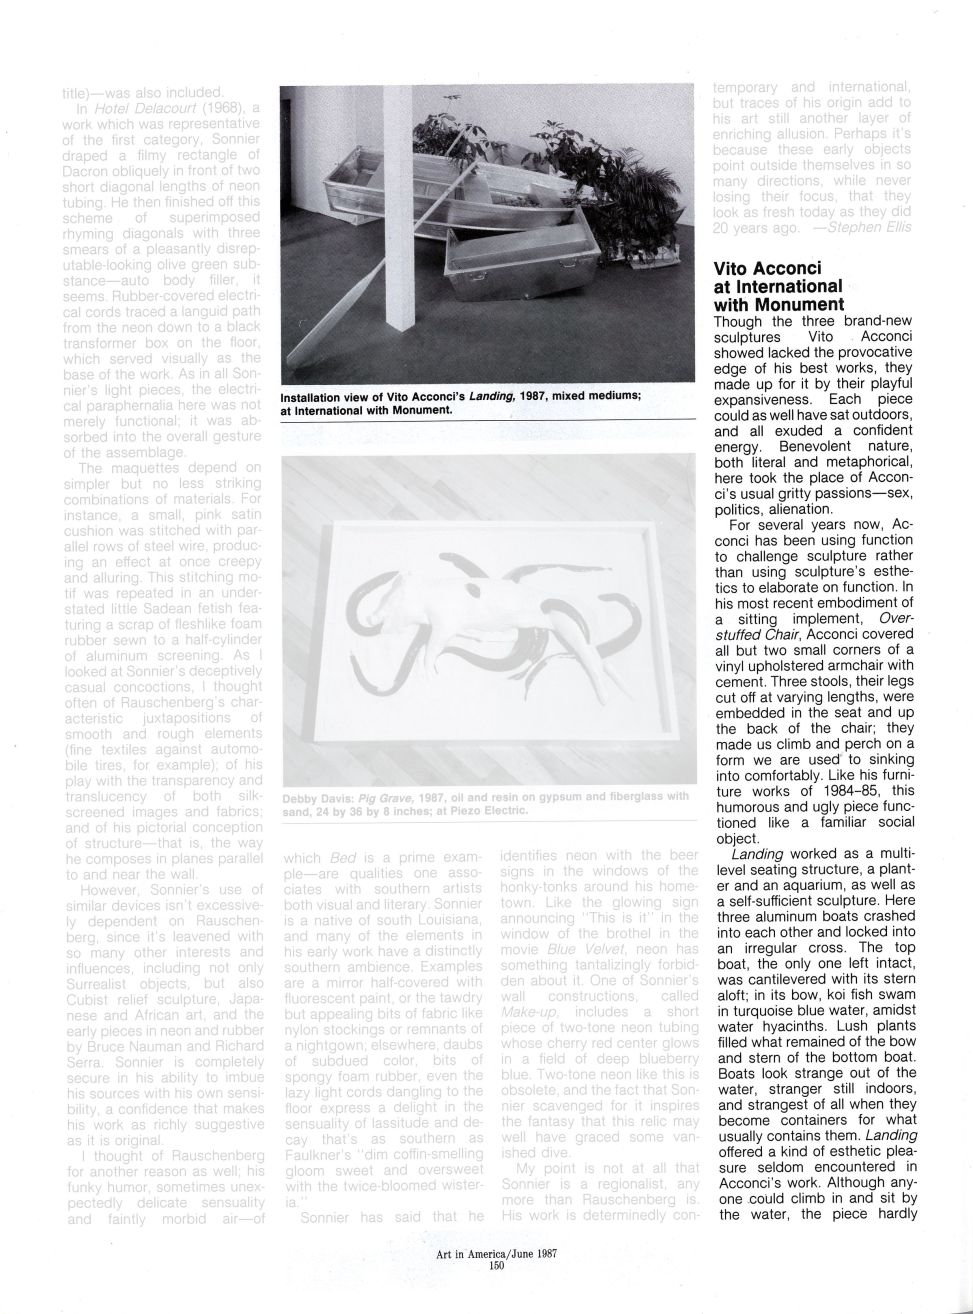 art_in_america_1987_acconci_page150